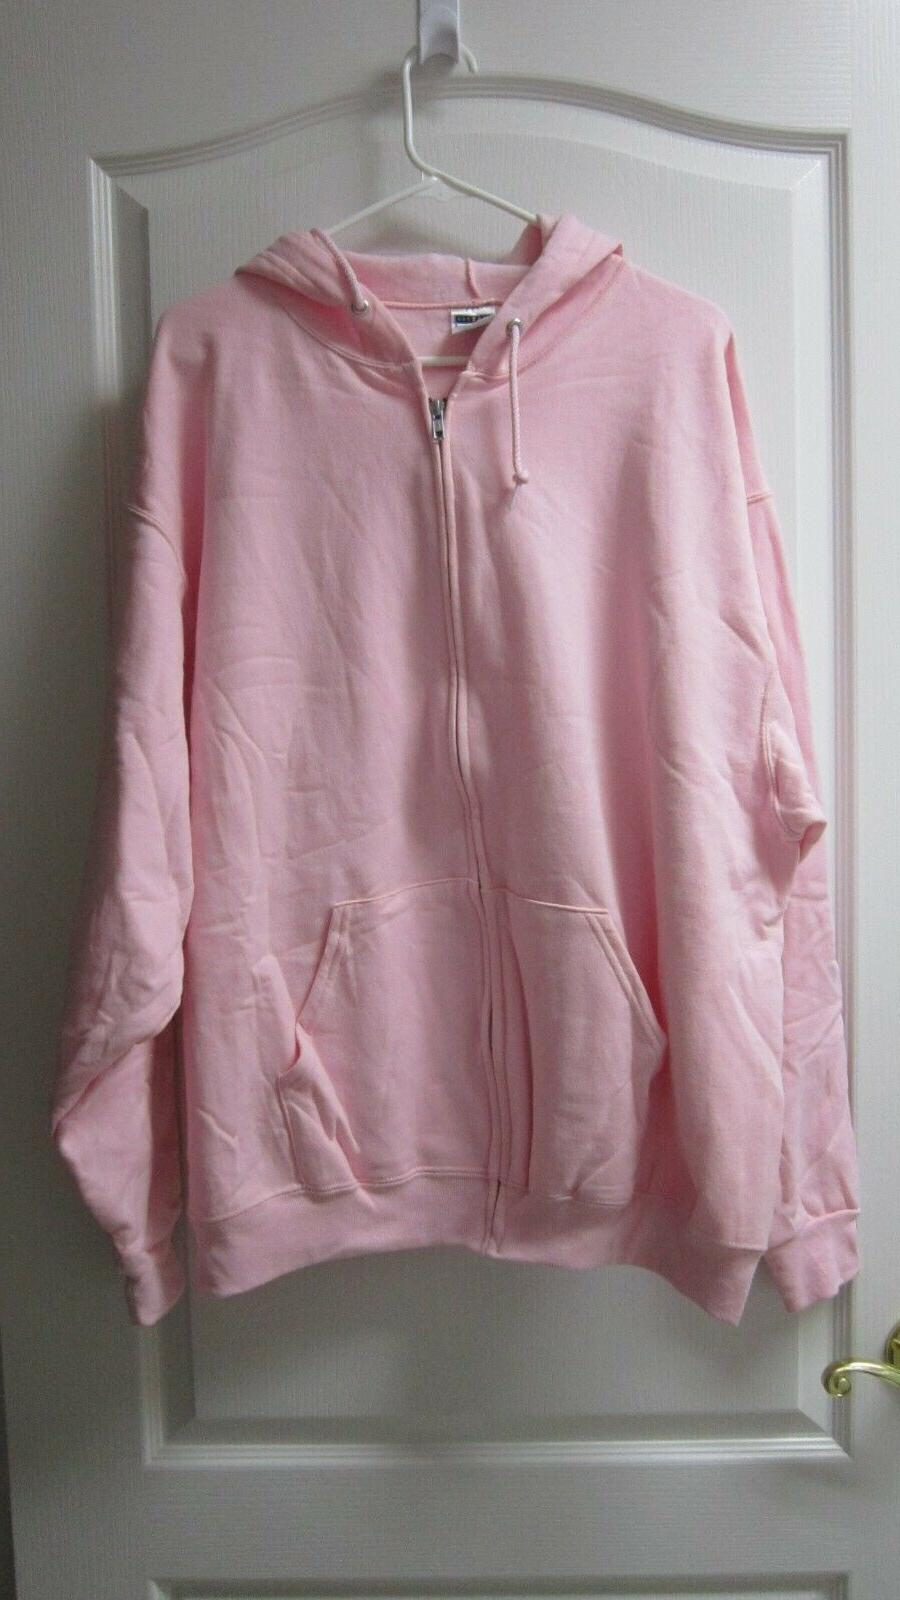 JERZEES NuBlend Full-Zip Hooded Pink Sweatshirt Fleece Hoodi